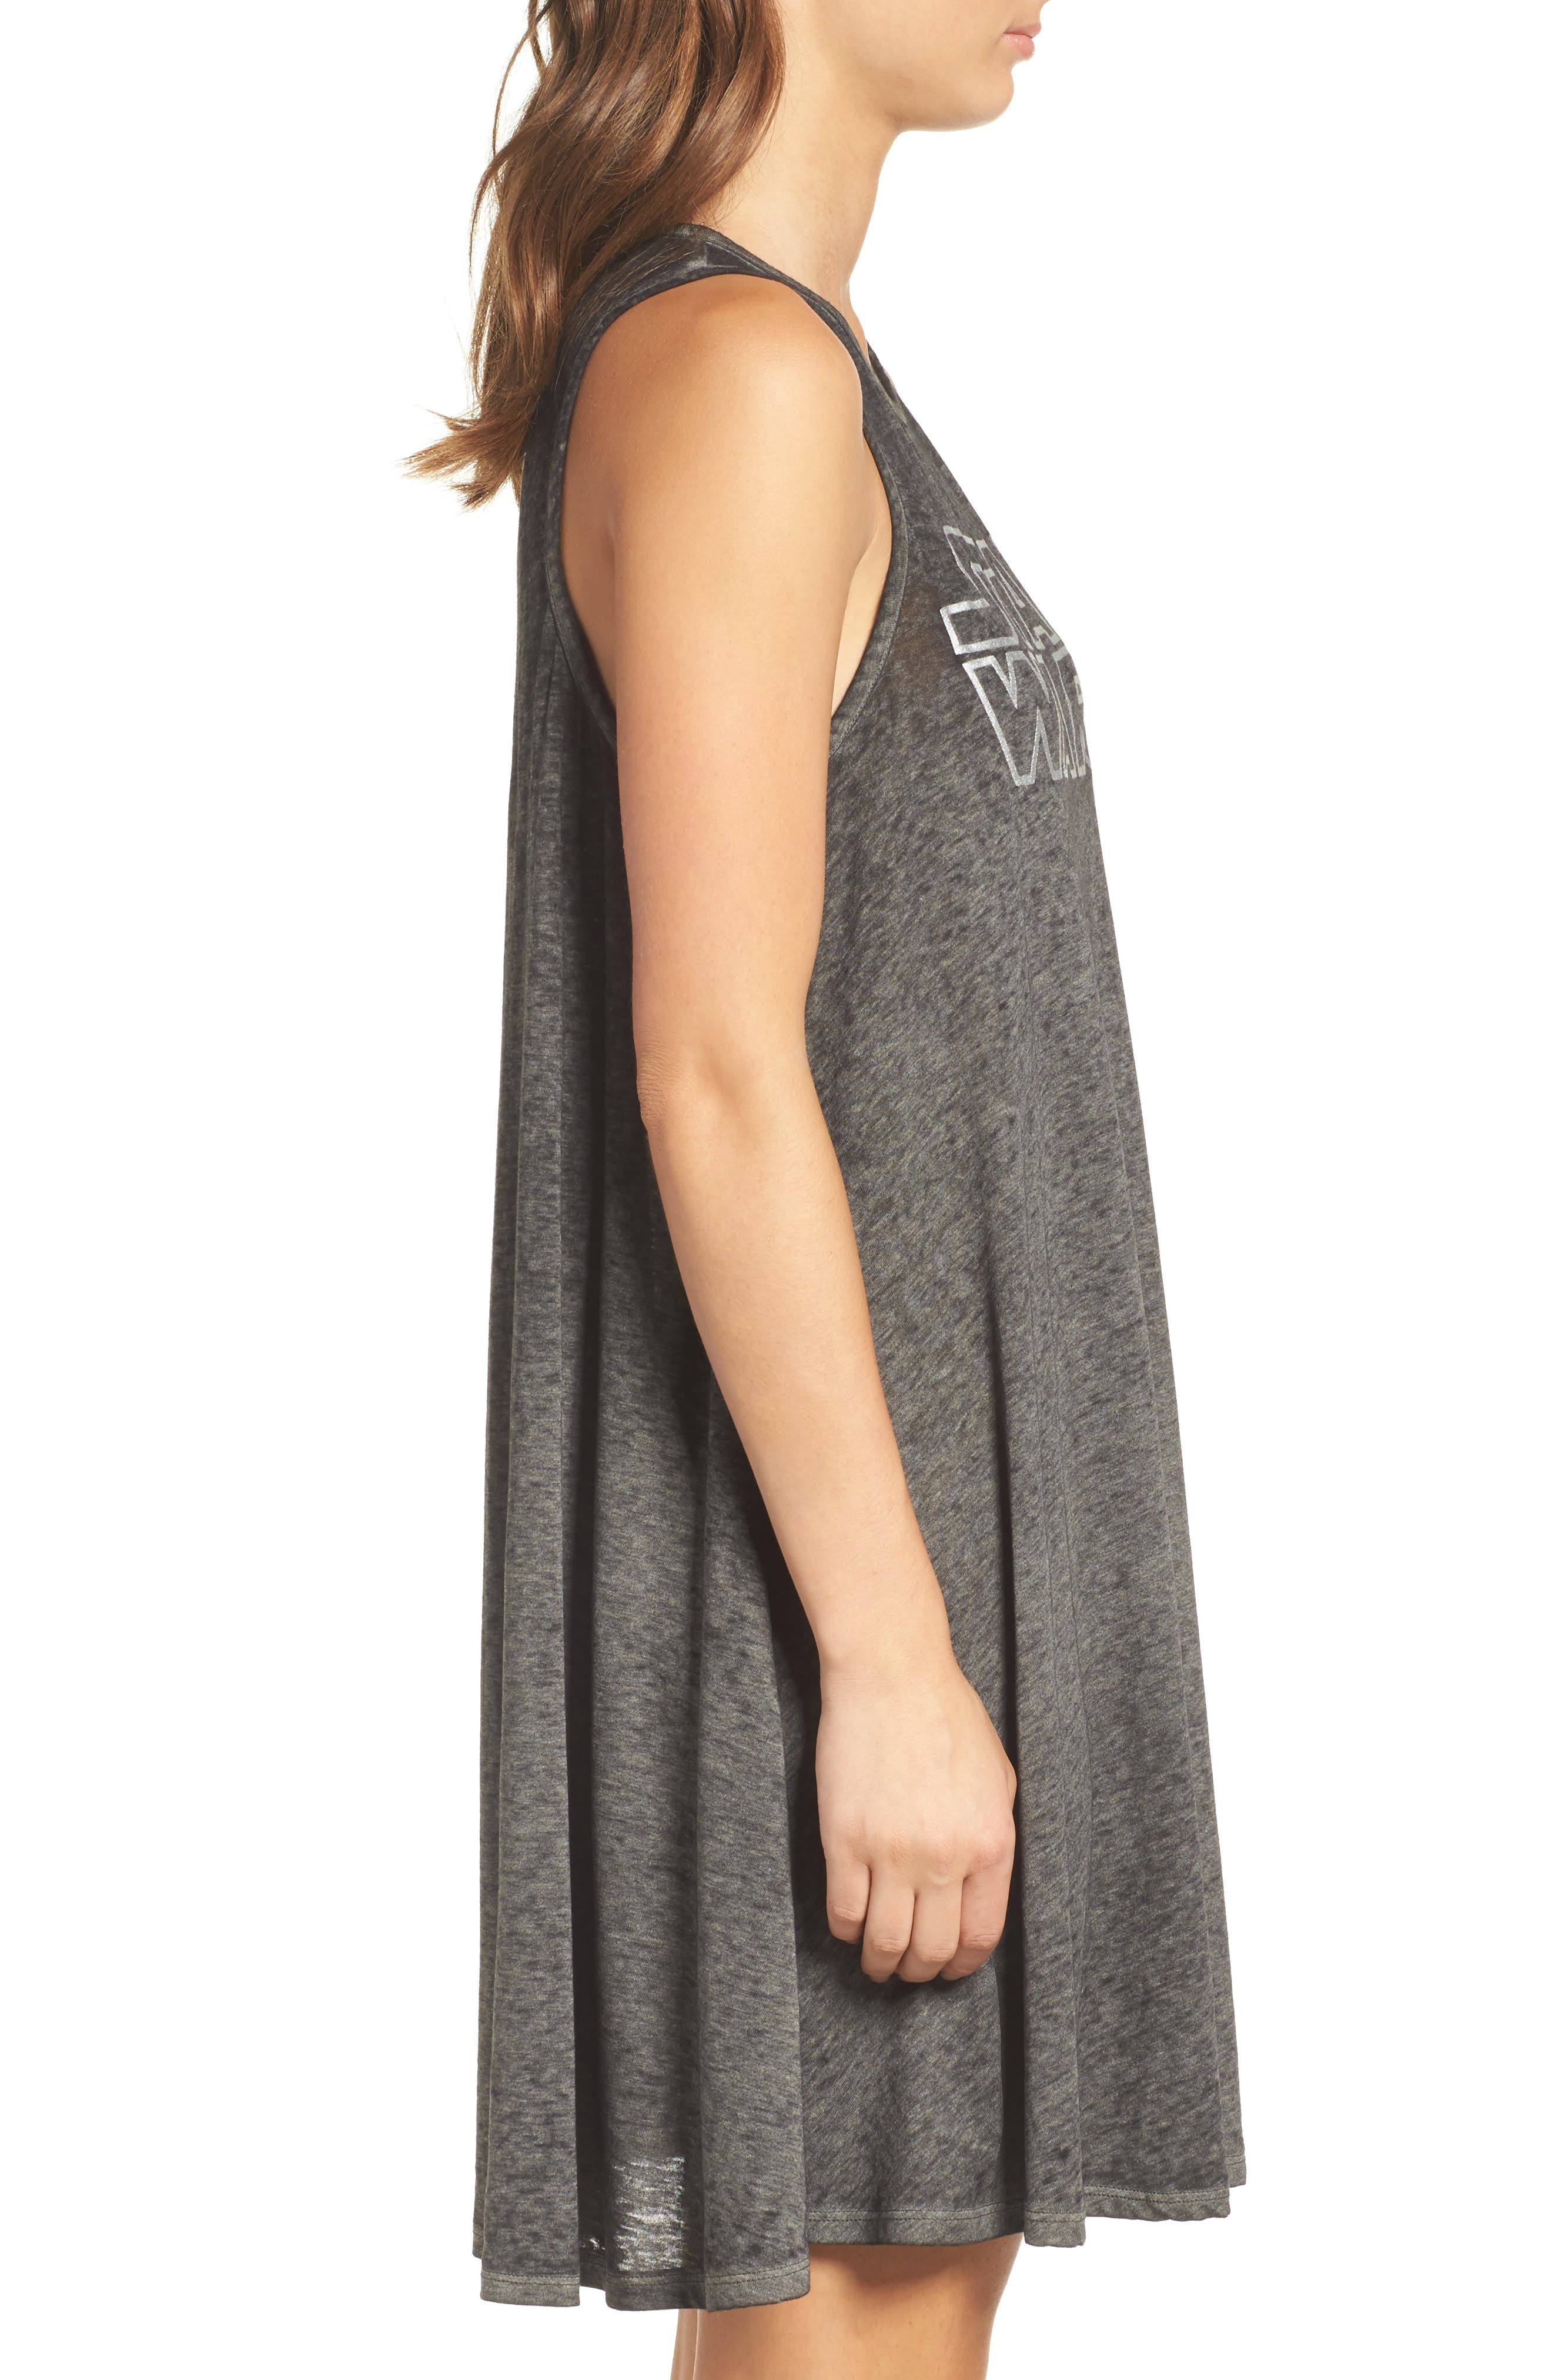 Star Wars<sup>™</sup> Graphic Short Nightgown,                             Alternate thumbnail 3, color,